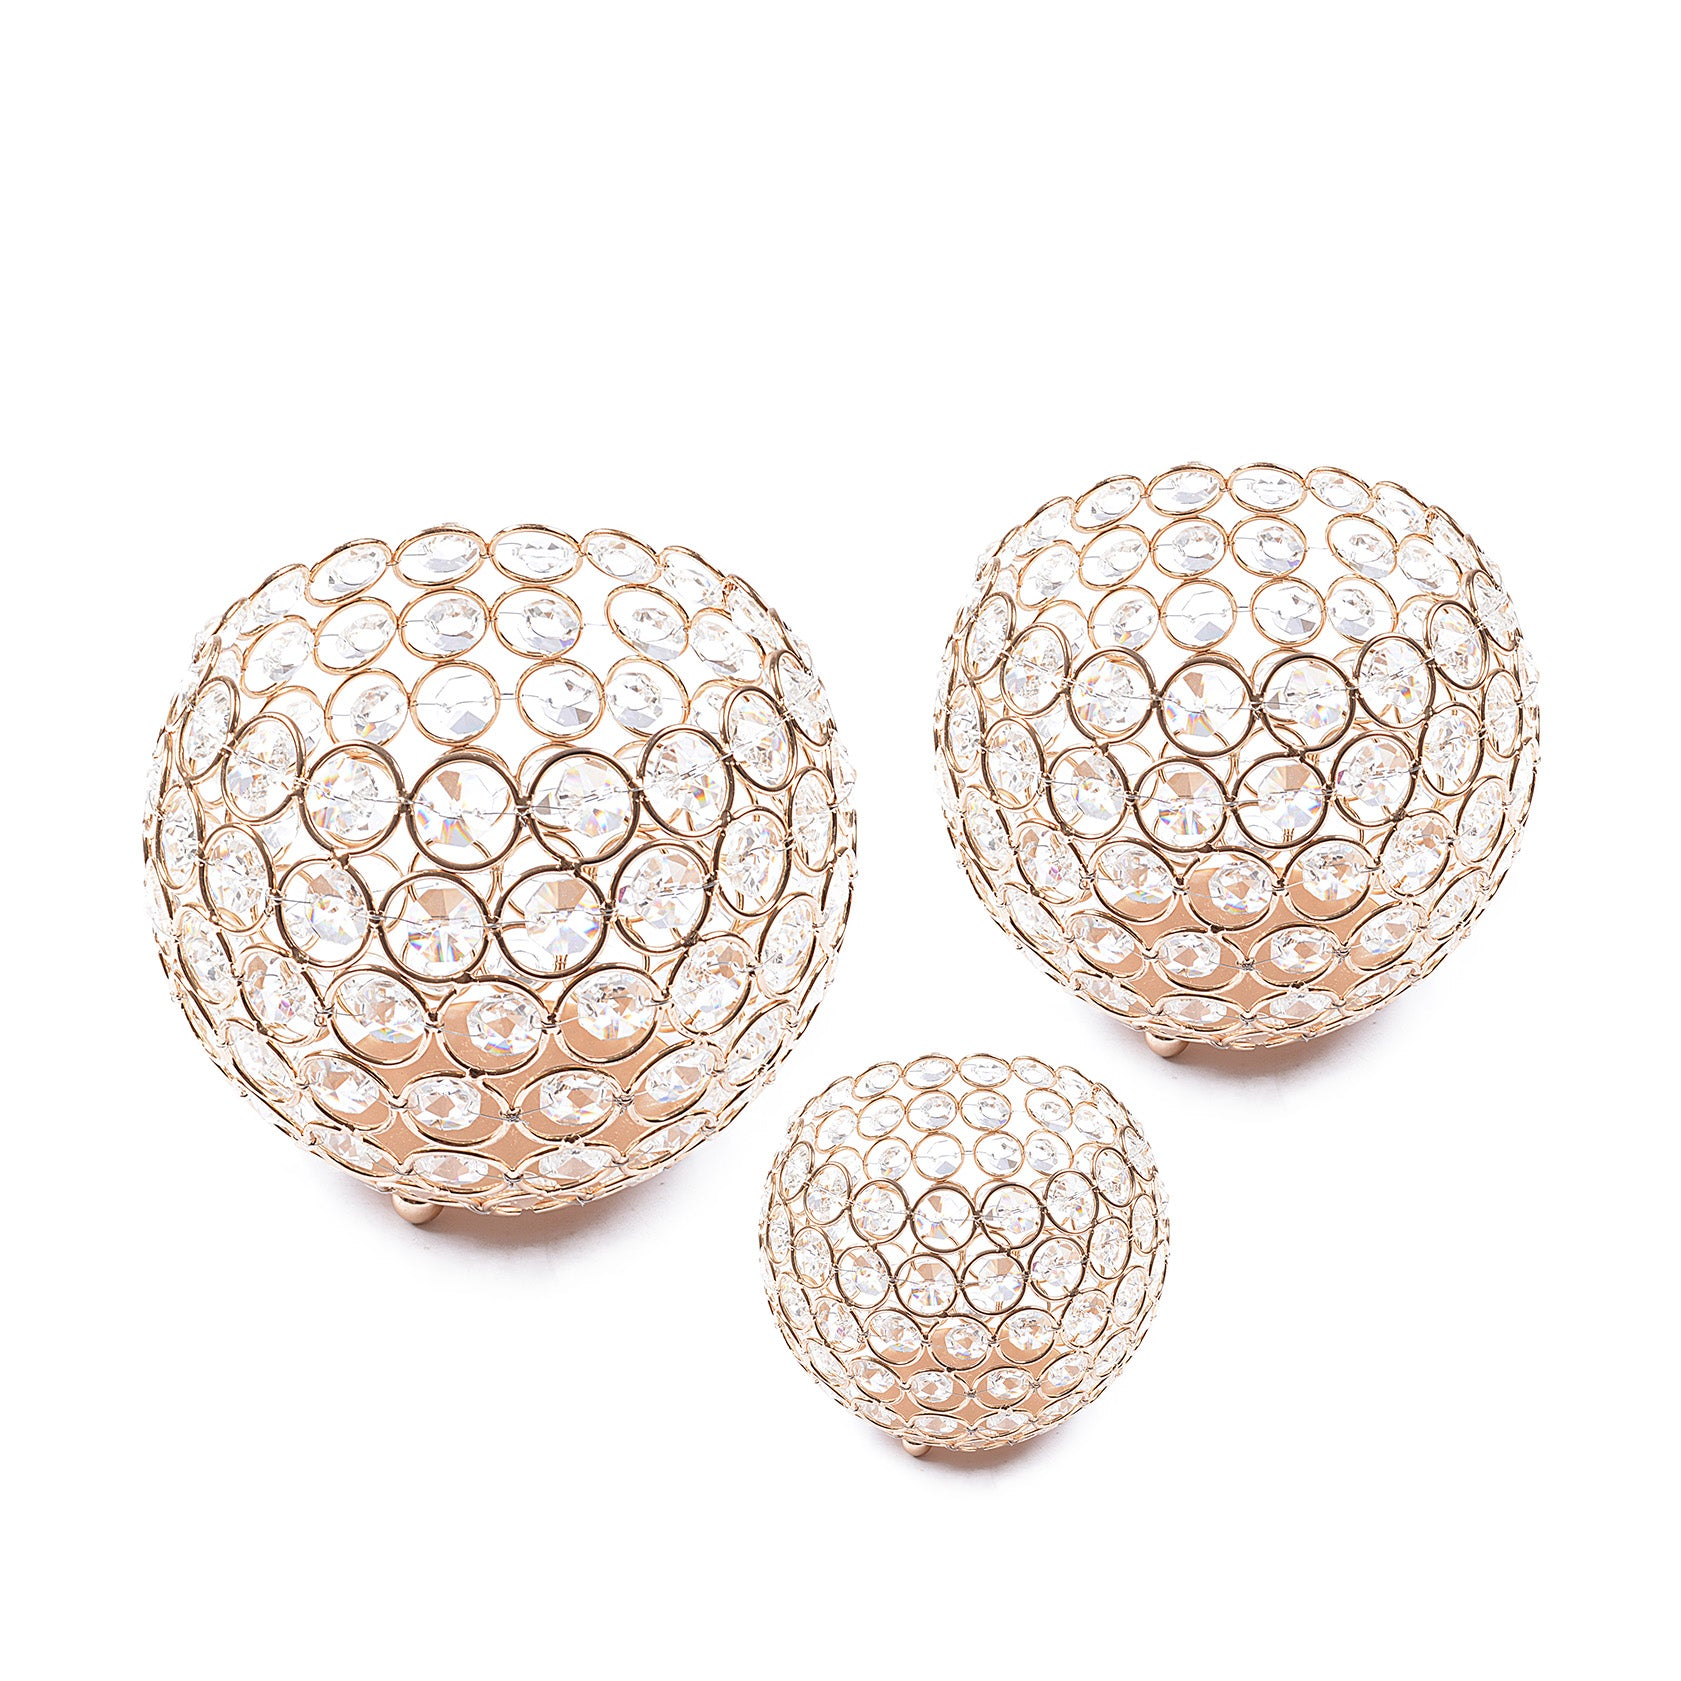 Wedding Gift Gold Crystal Bowl (Set of 3)